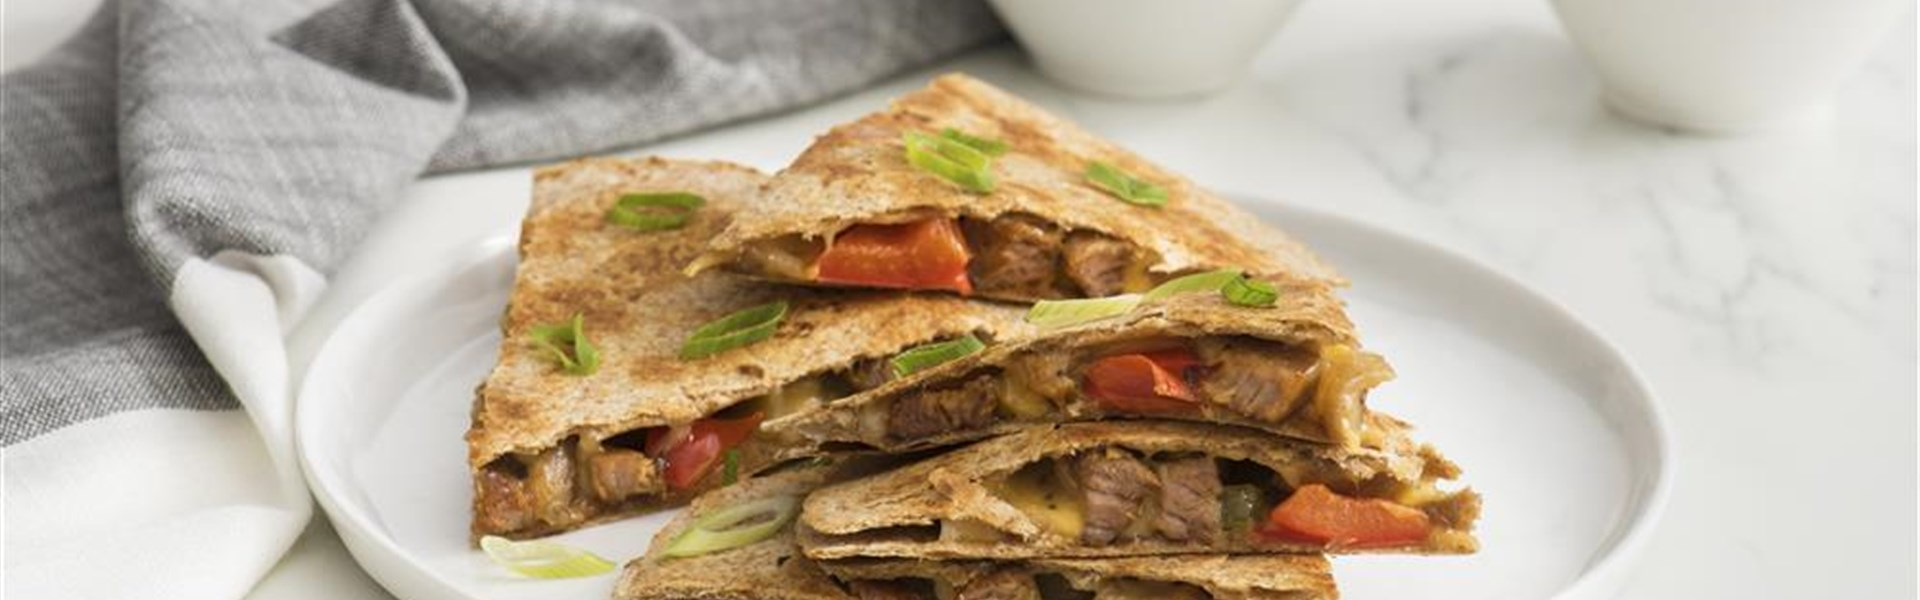 Pork and Pepper Quesadillas